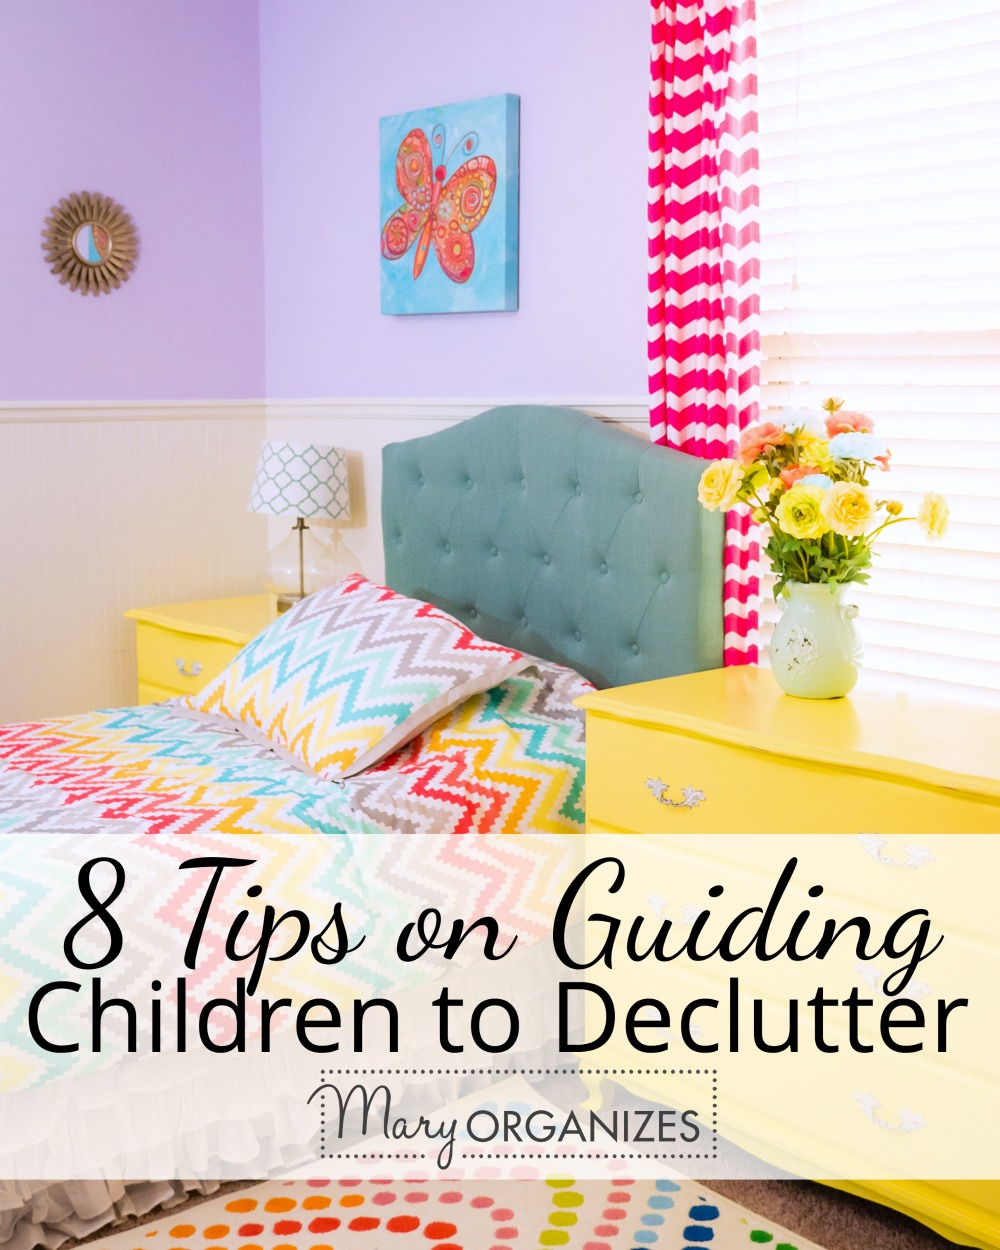 8 Tips on Guiding Children To Declutter